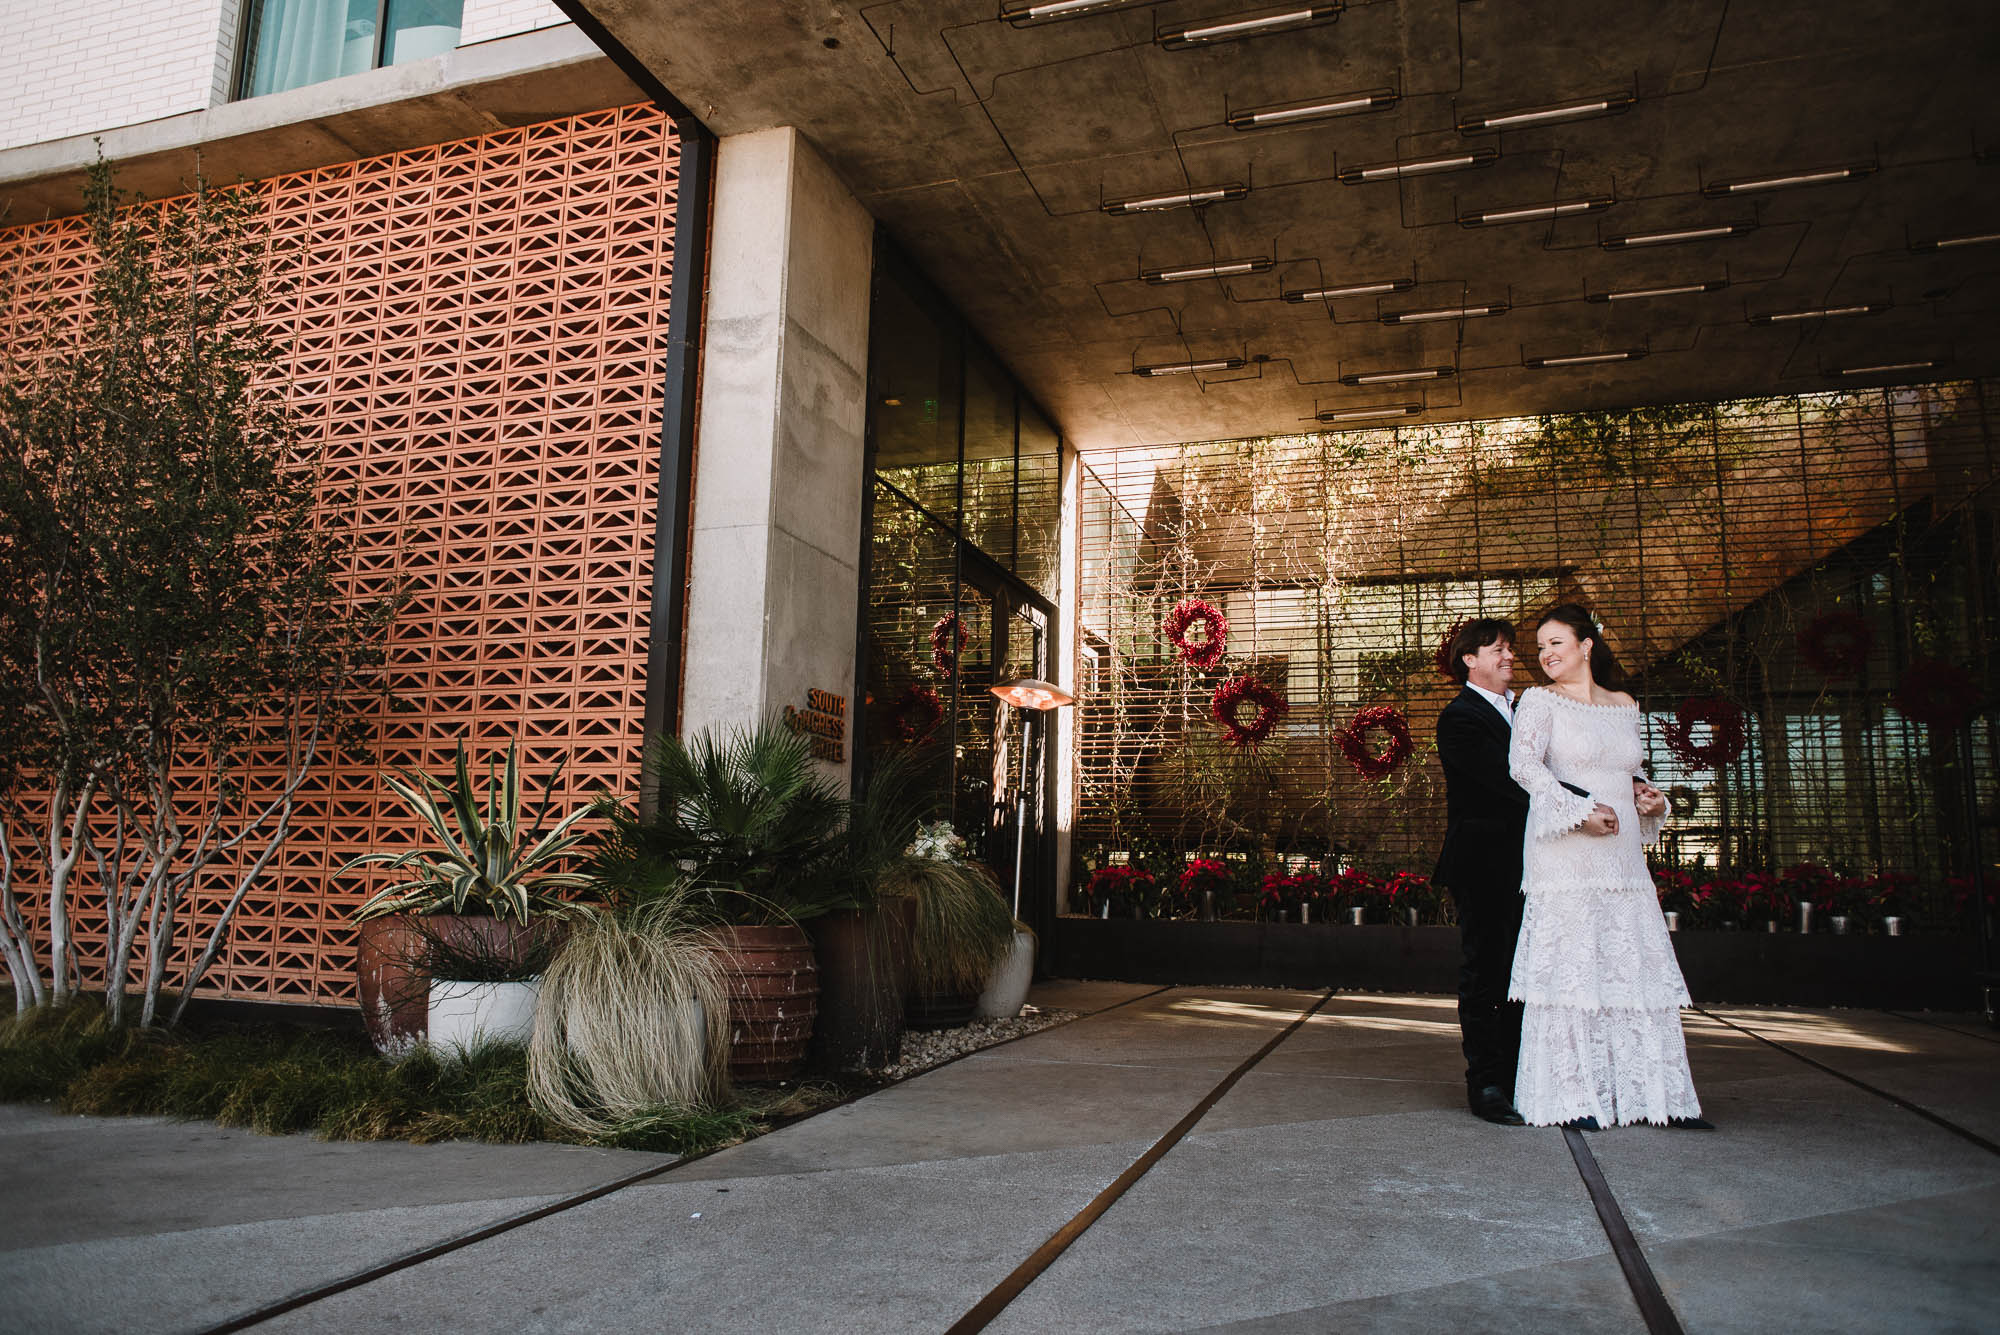 wedding portraits outside south congress hotel in austin texas, austin wedding photographer